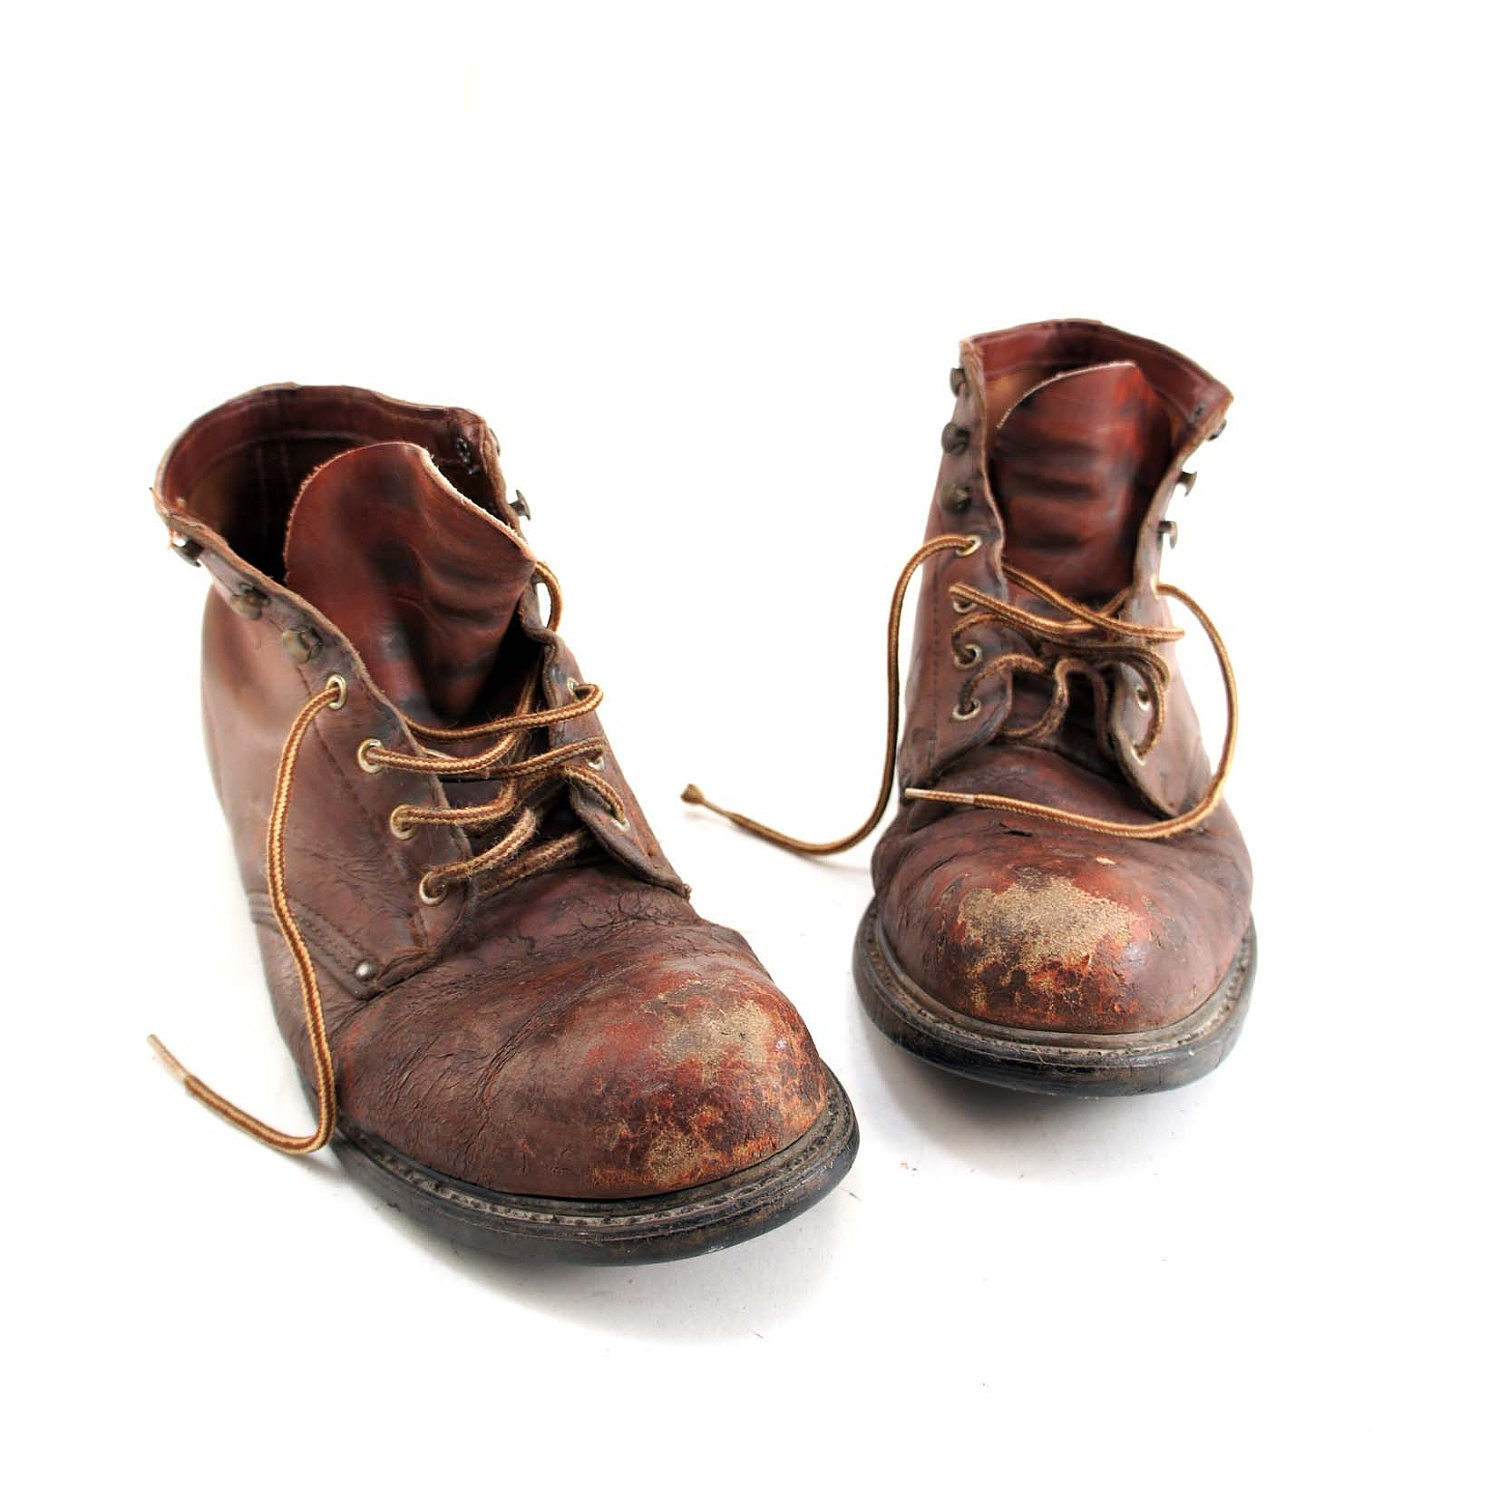 Distressed Steel Toe Work Boots In Old Fashioned Miner Style